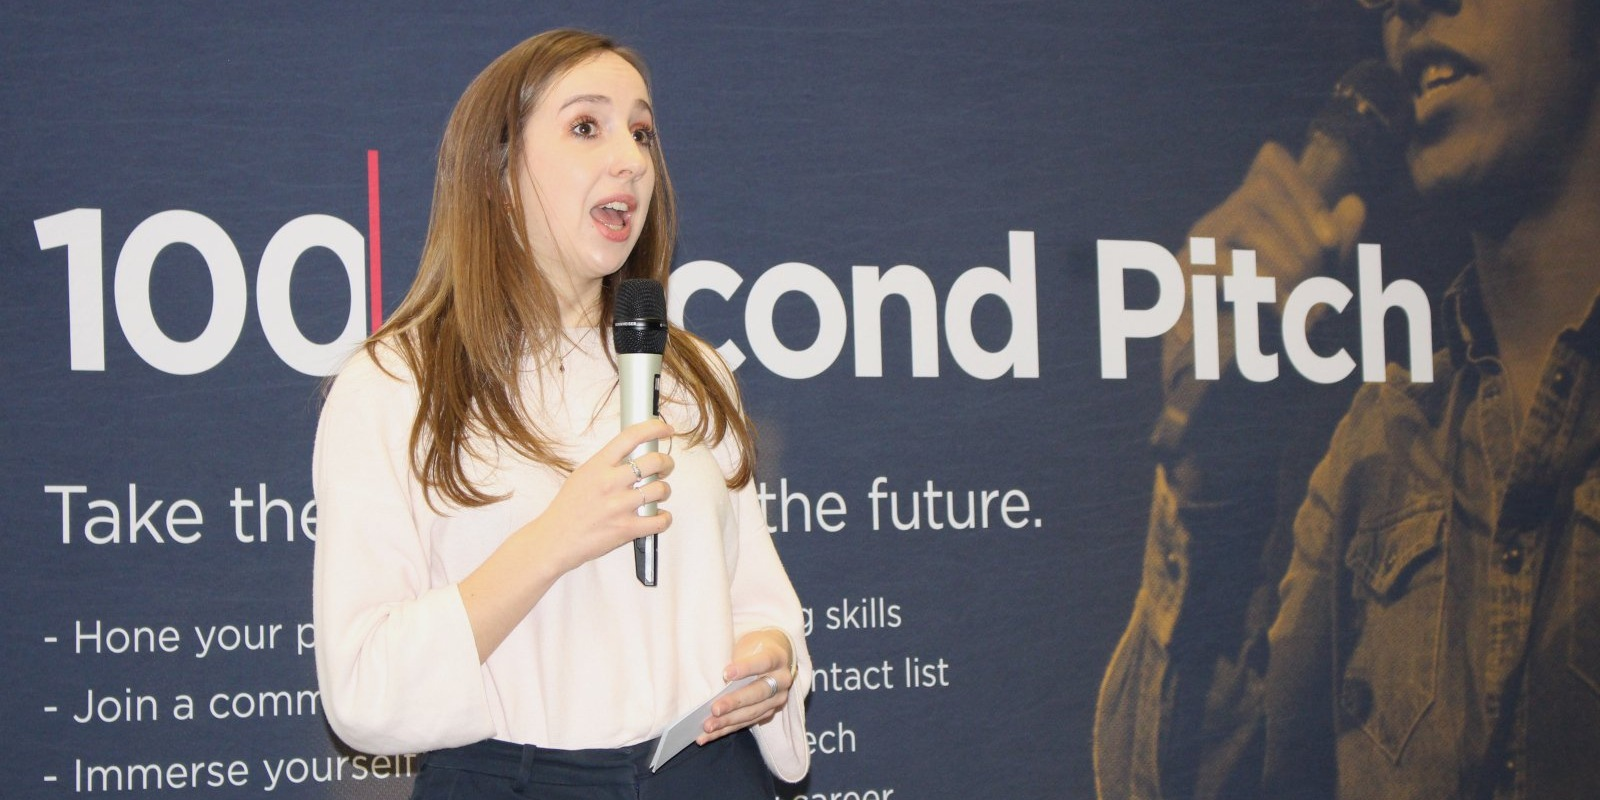 100 Second Pitch Speaker